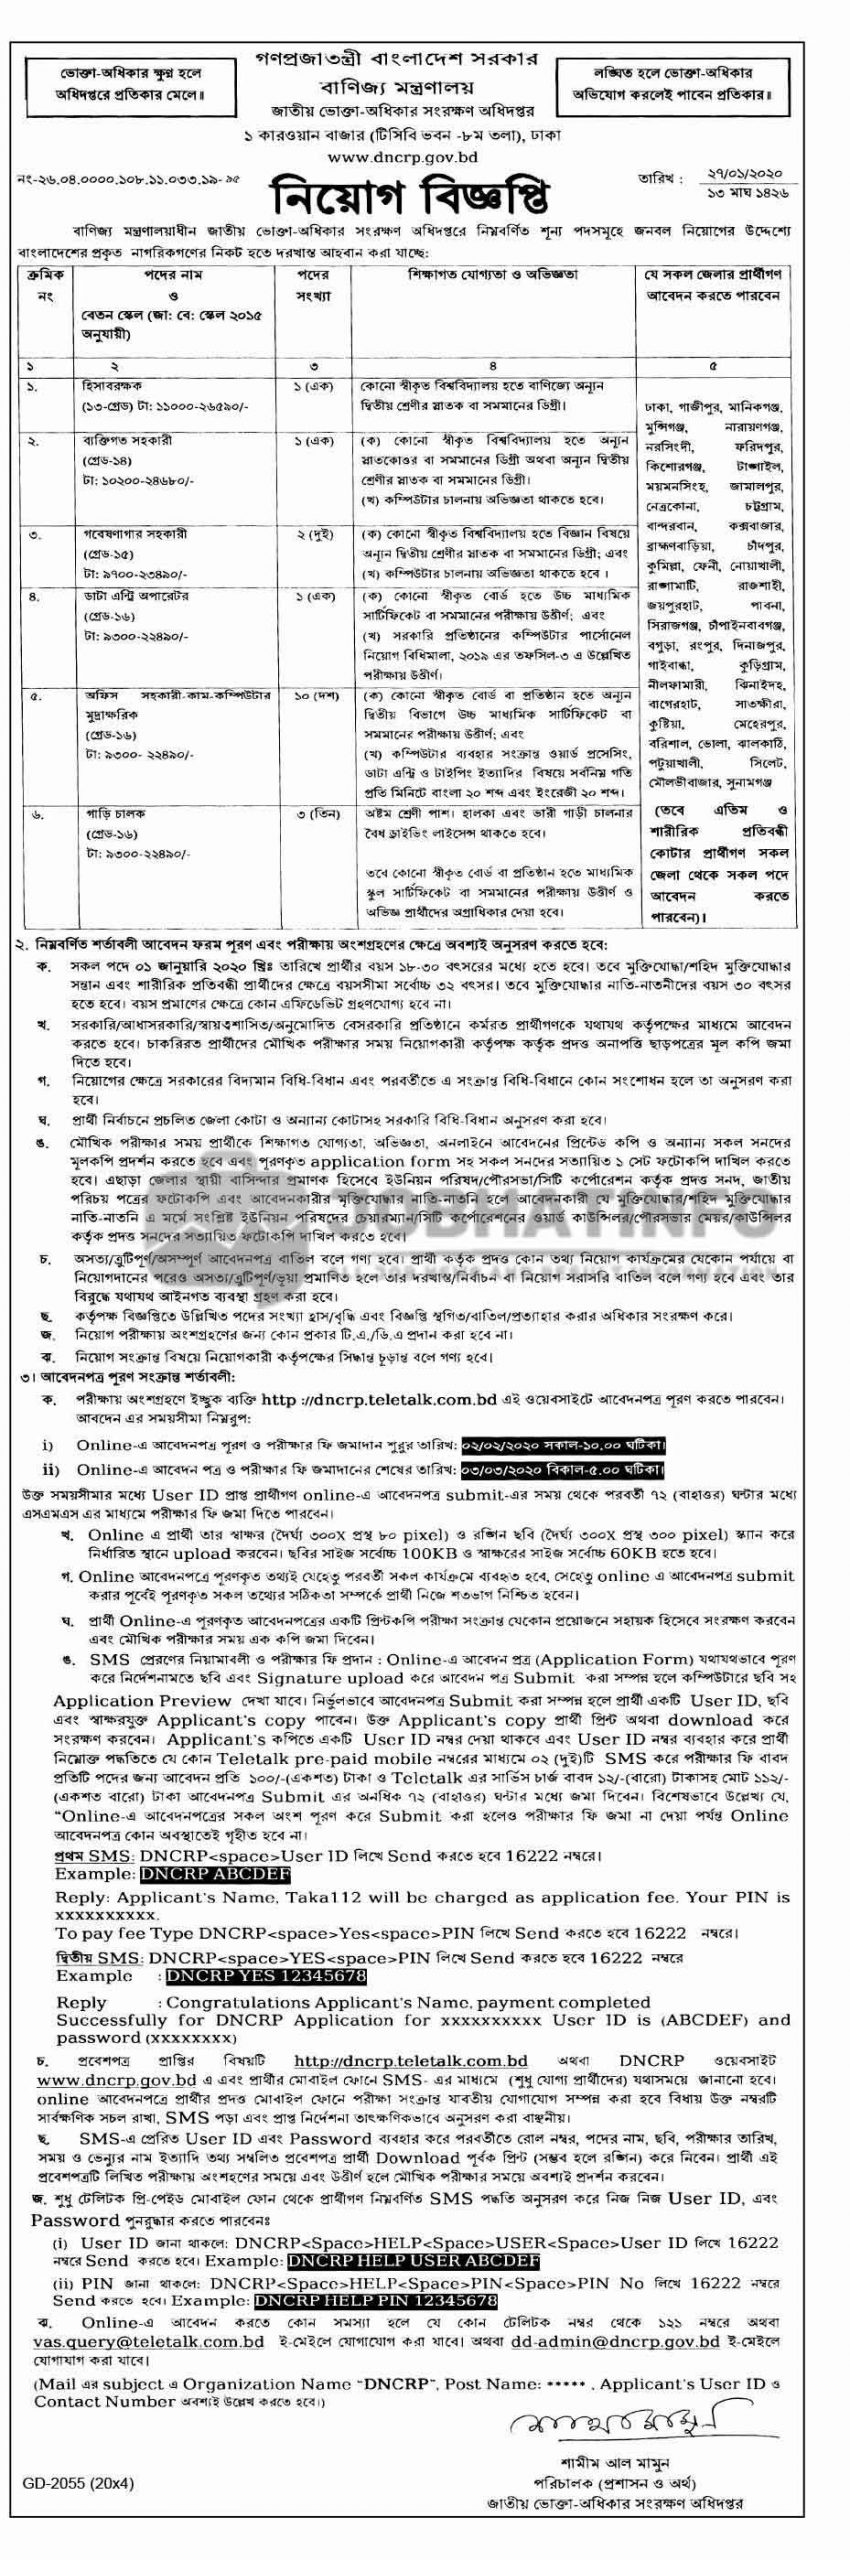 MINCOM Job Circular 2021 | Ministry of Commerce Job Circular | Apply Today 2